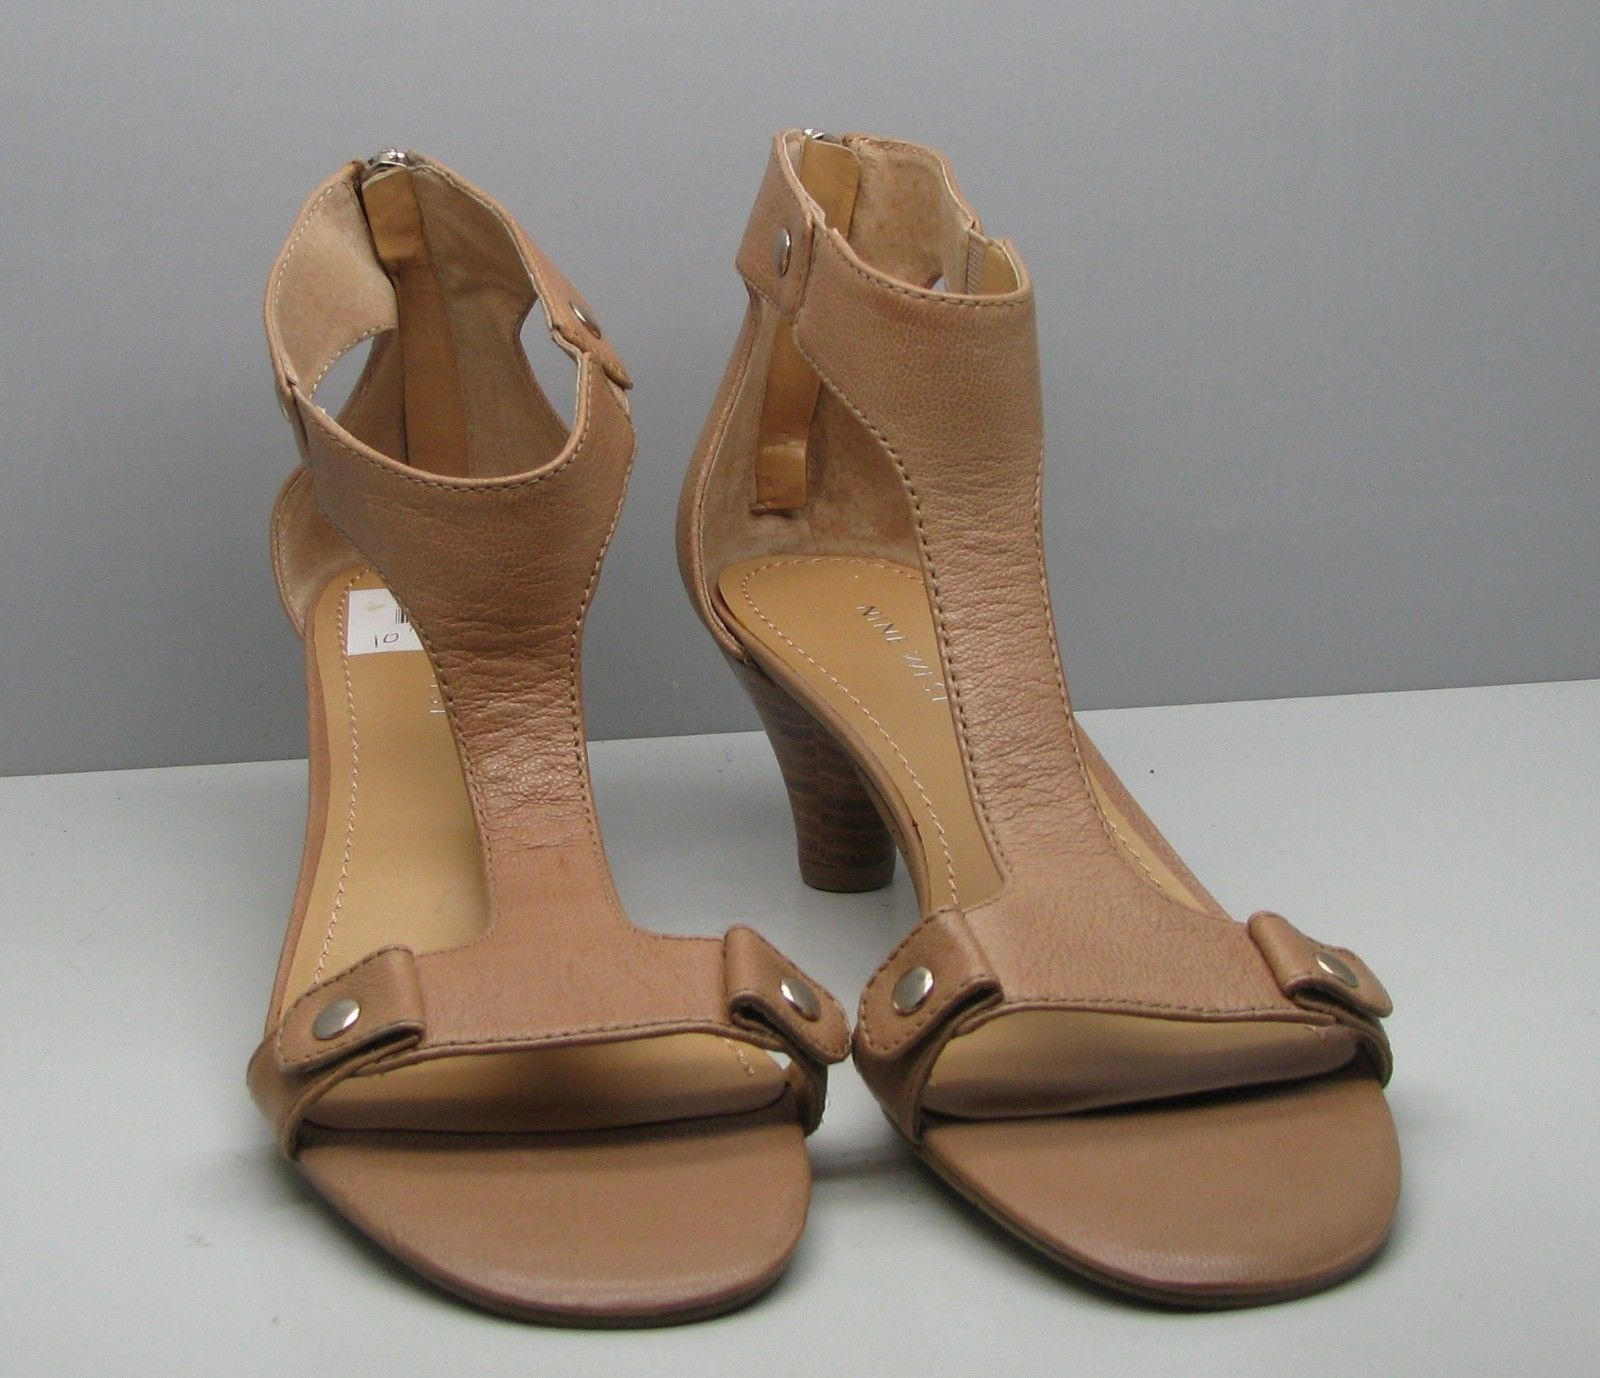 "Nine West SHOES Womans 10 M Tan Leather FANCY Zips Ankle Strap 2 1/4"" Heel"